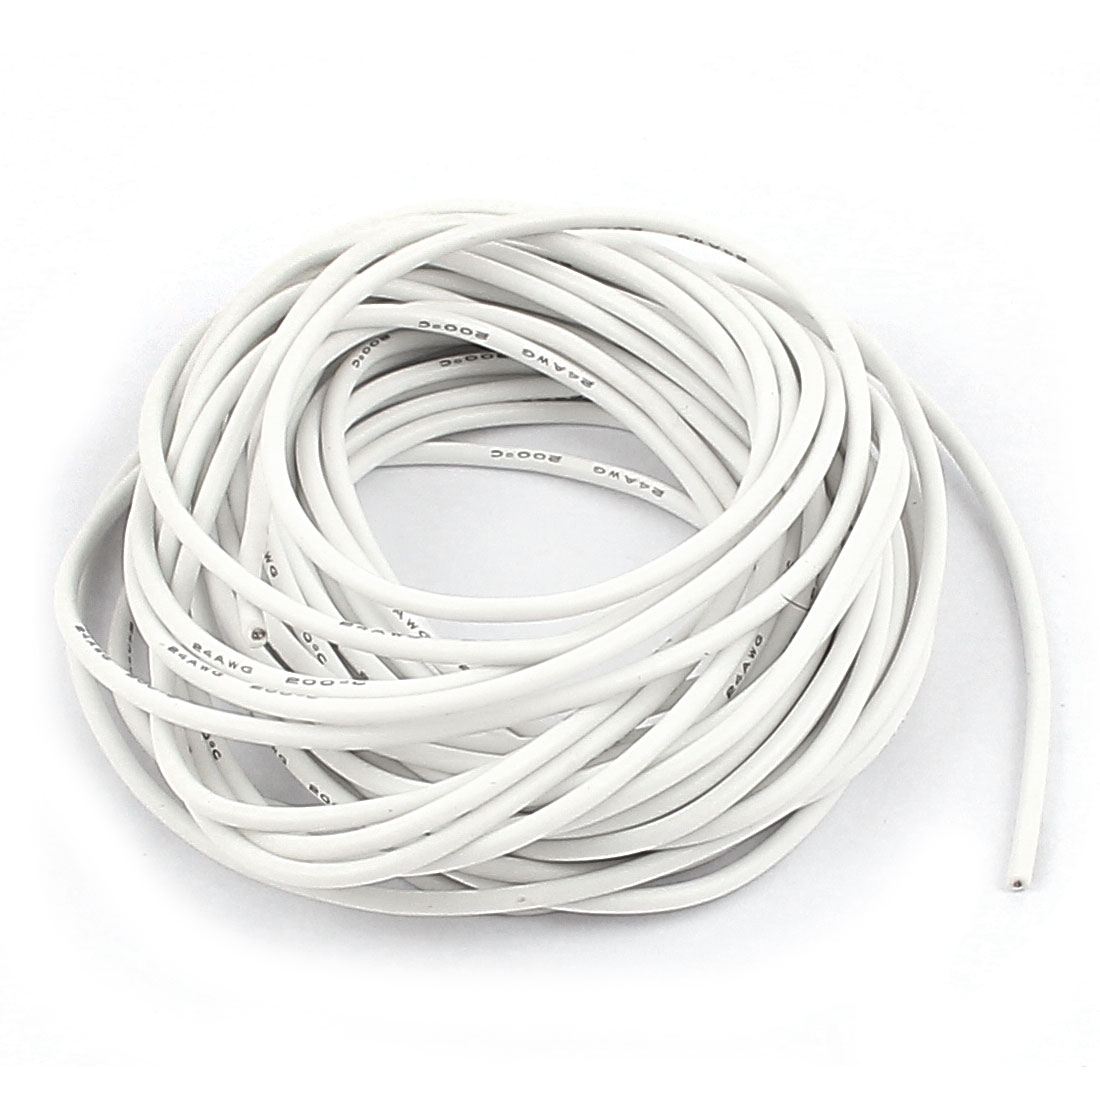 5M 24AWG Electric Copper Core Flexible Silicone Wire Cable White